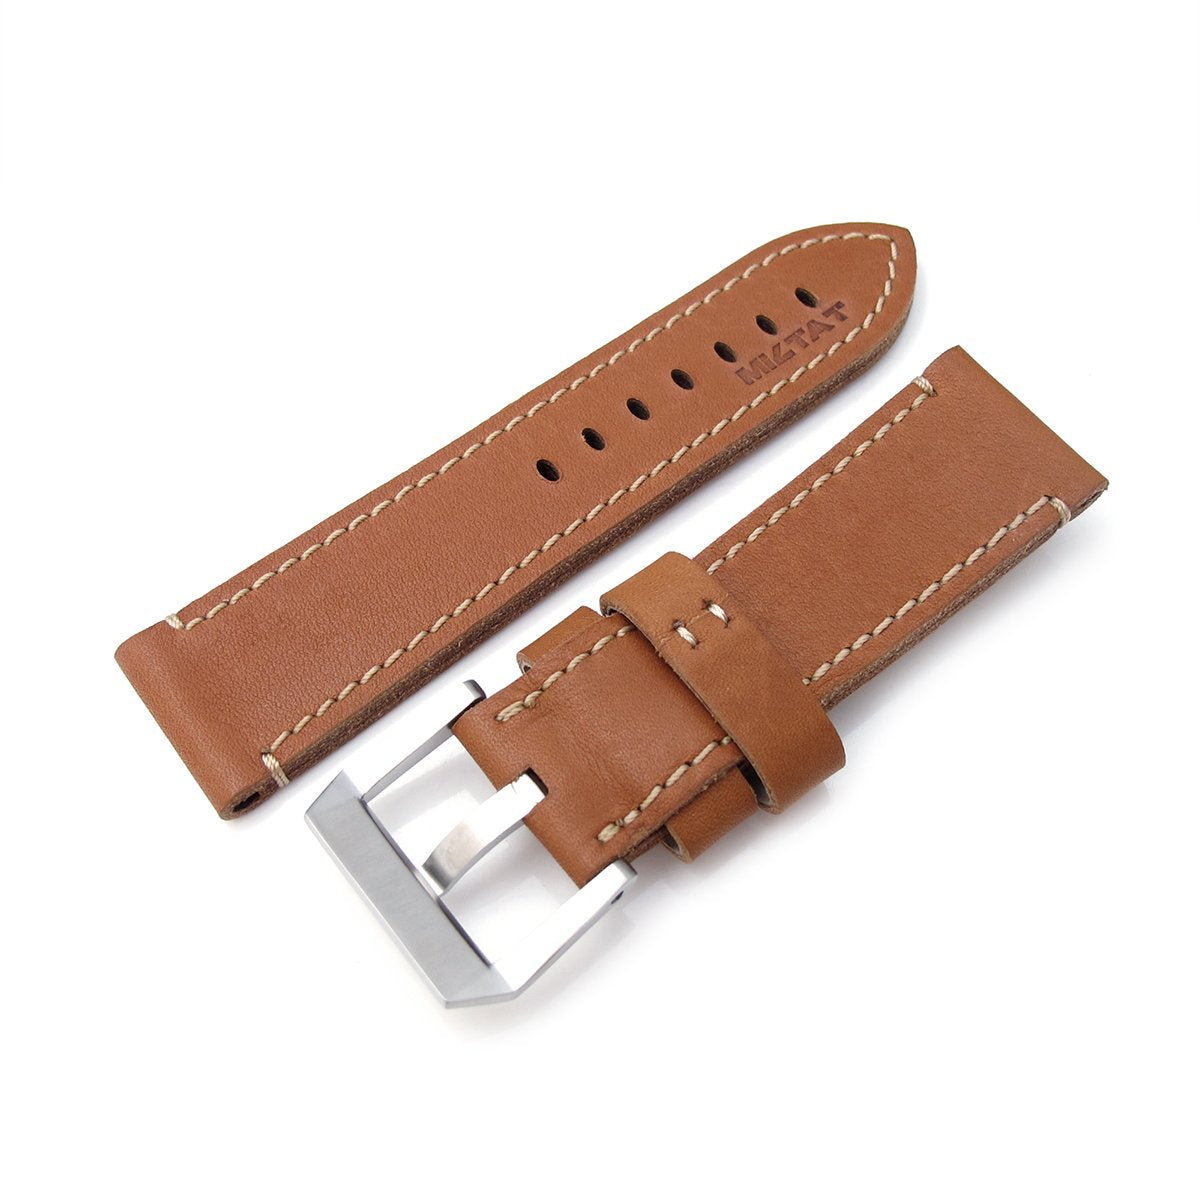 26mm MiLTAT Cashmere Calf Tan Color Watch Strap Beige Hand Stitching Strapcode Watch Bands